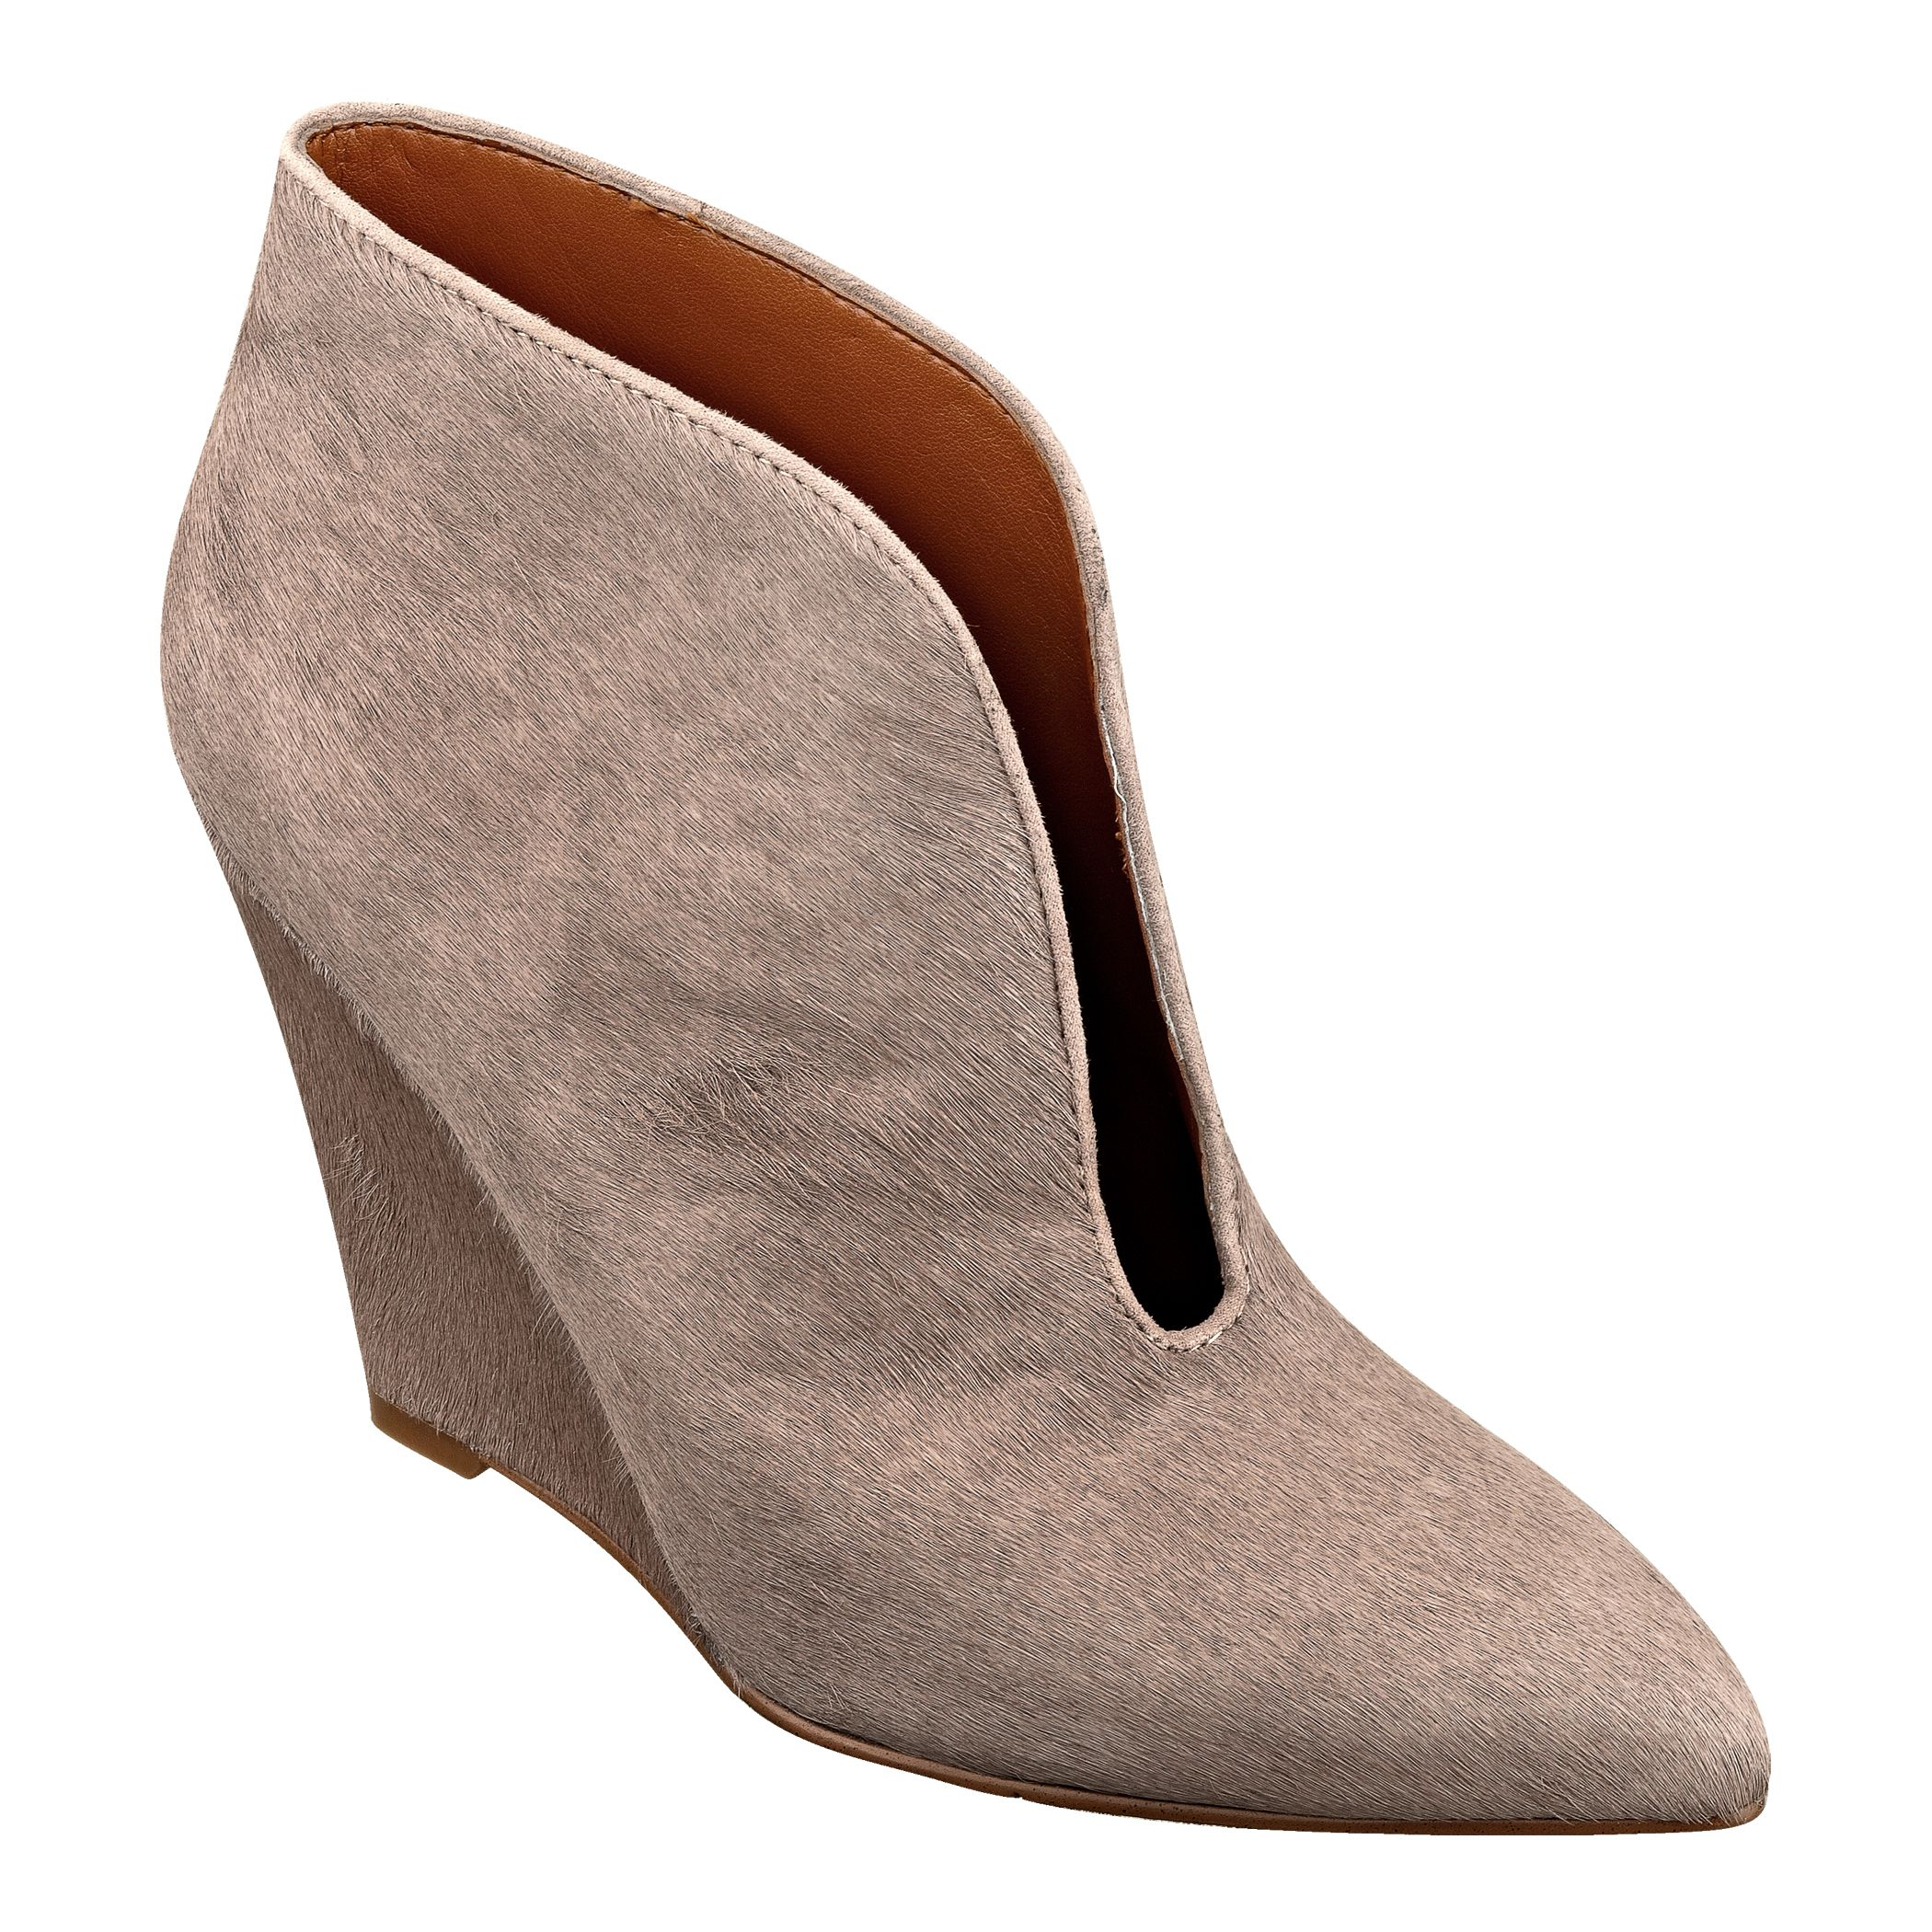 d8bf643434e1 Nine west new arrivals destino bootie so classy i love this jpg 2100x2100 Nine  west new